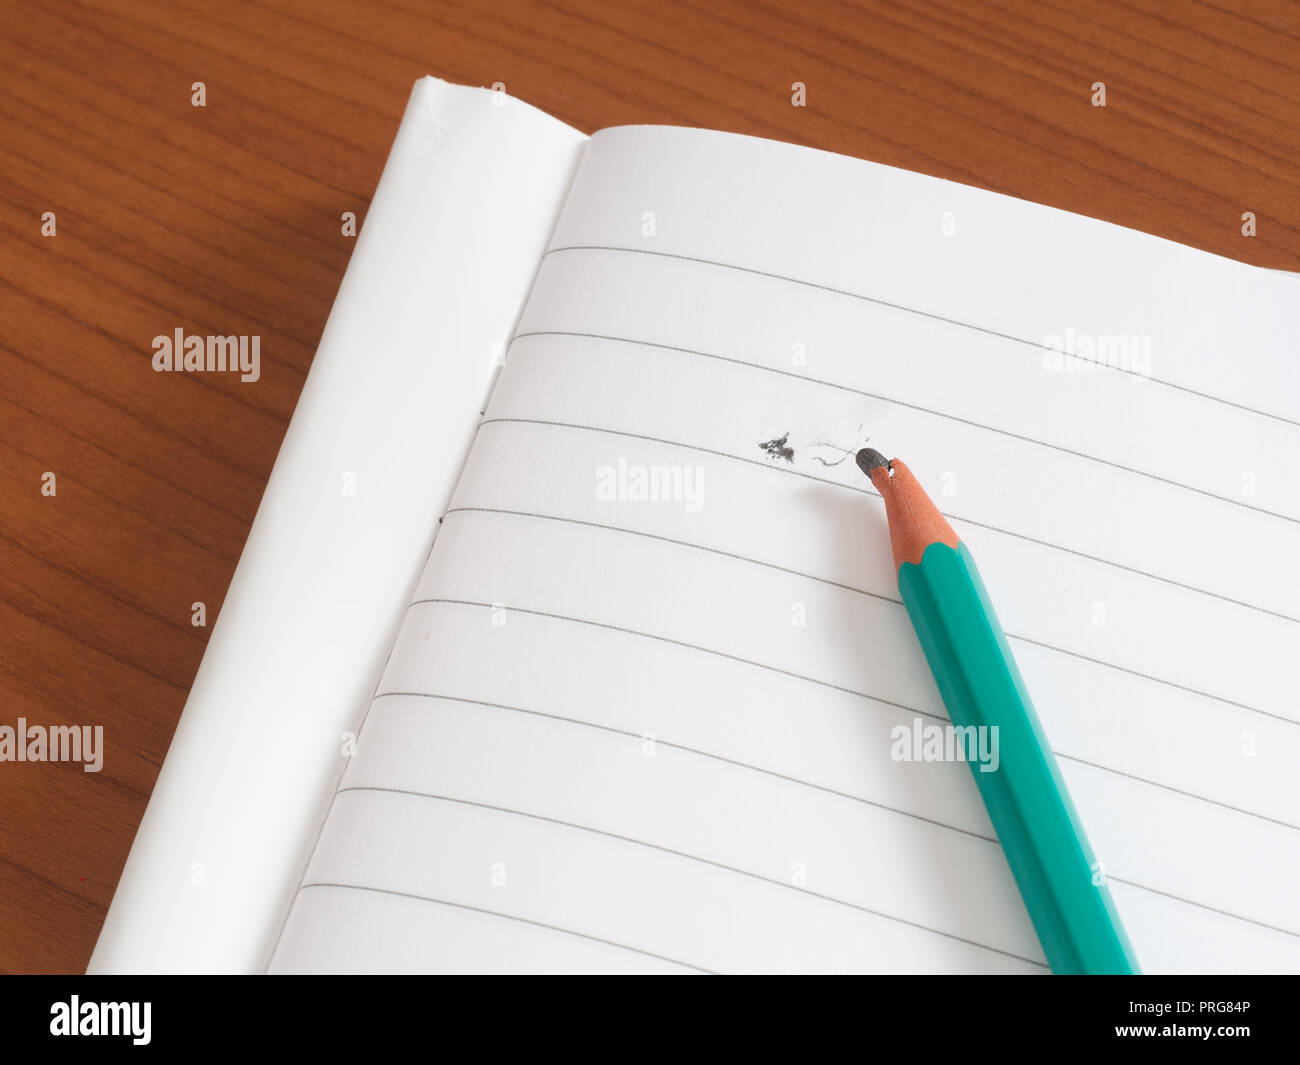 Broken pencil lead on blank lined paper. Stress or writers block. - Stock Image